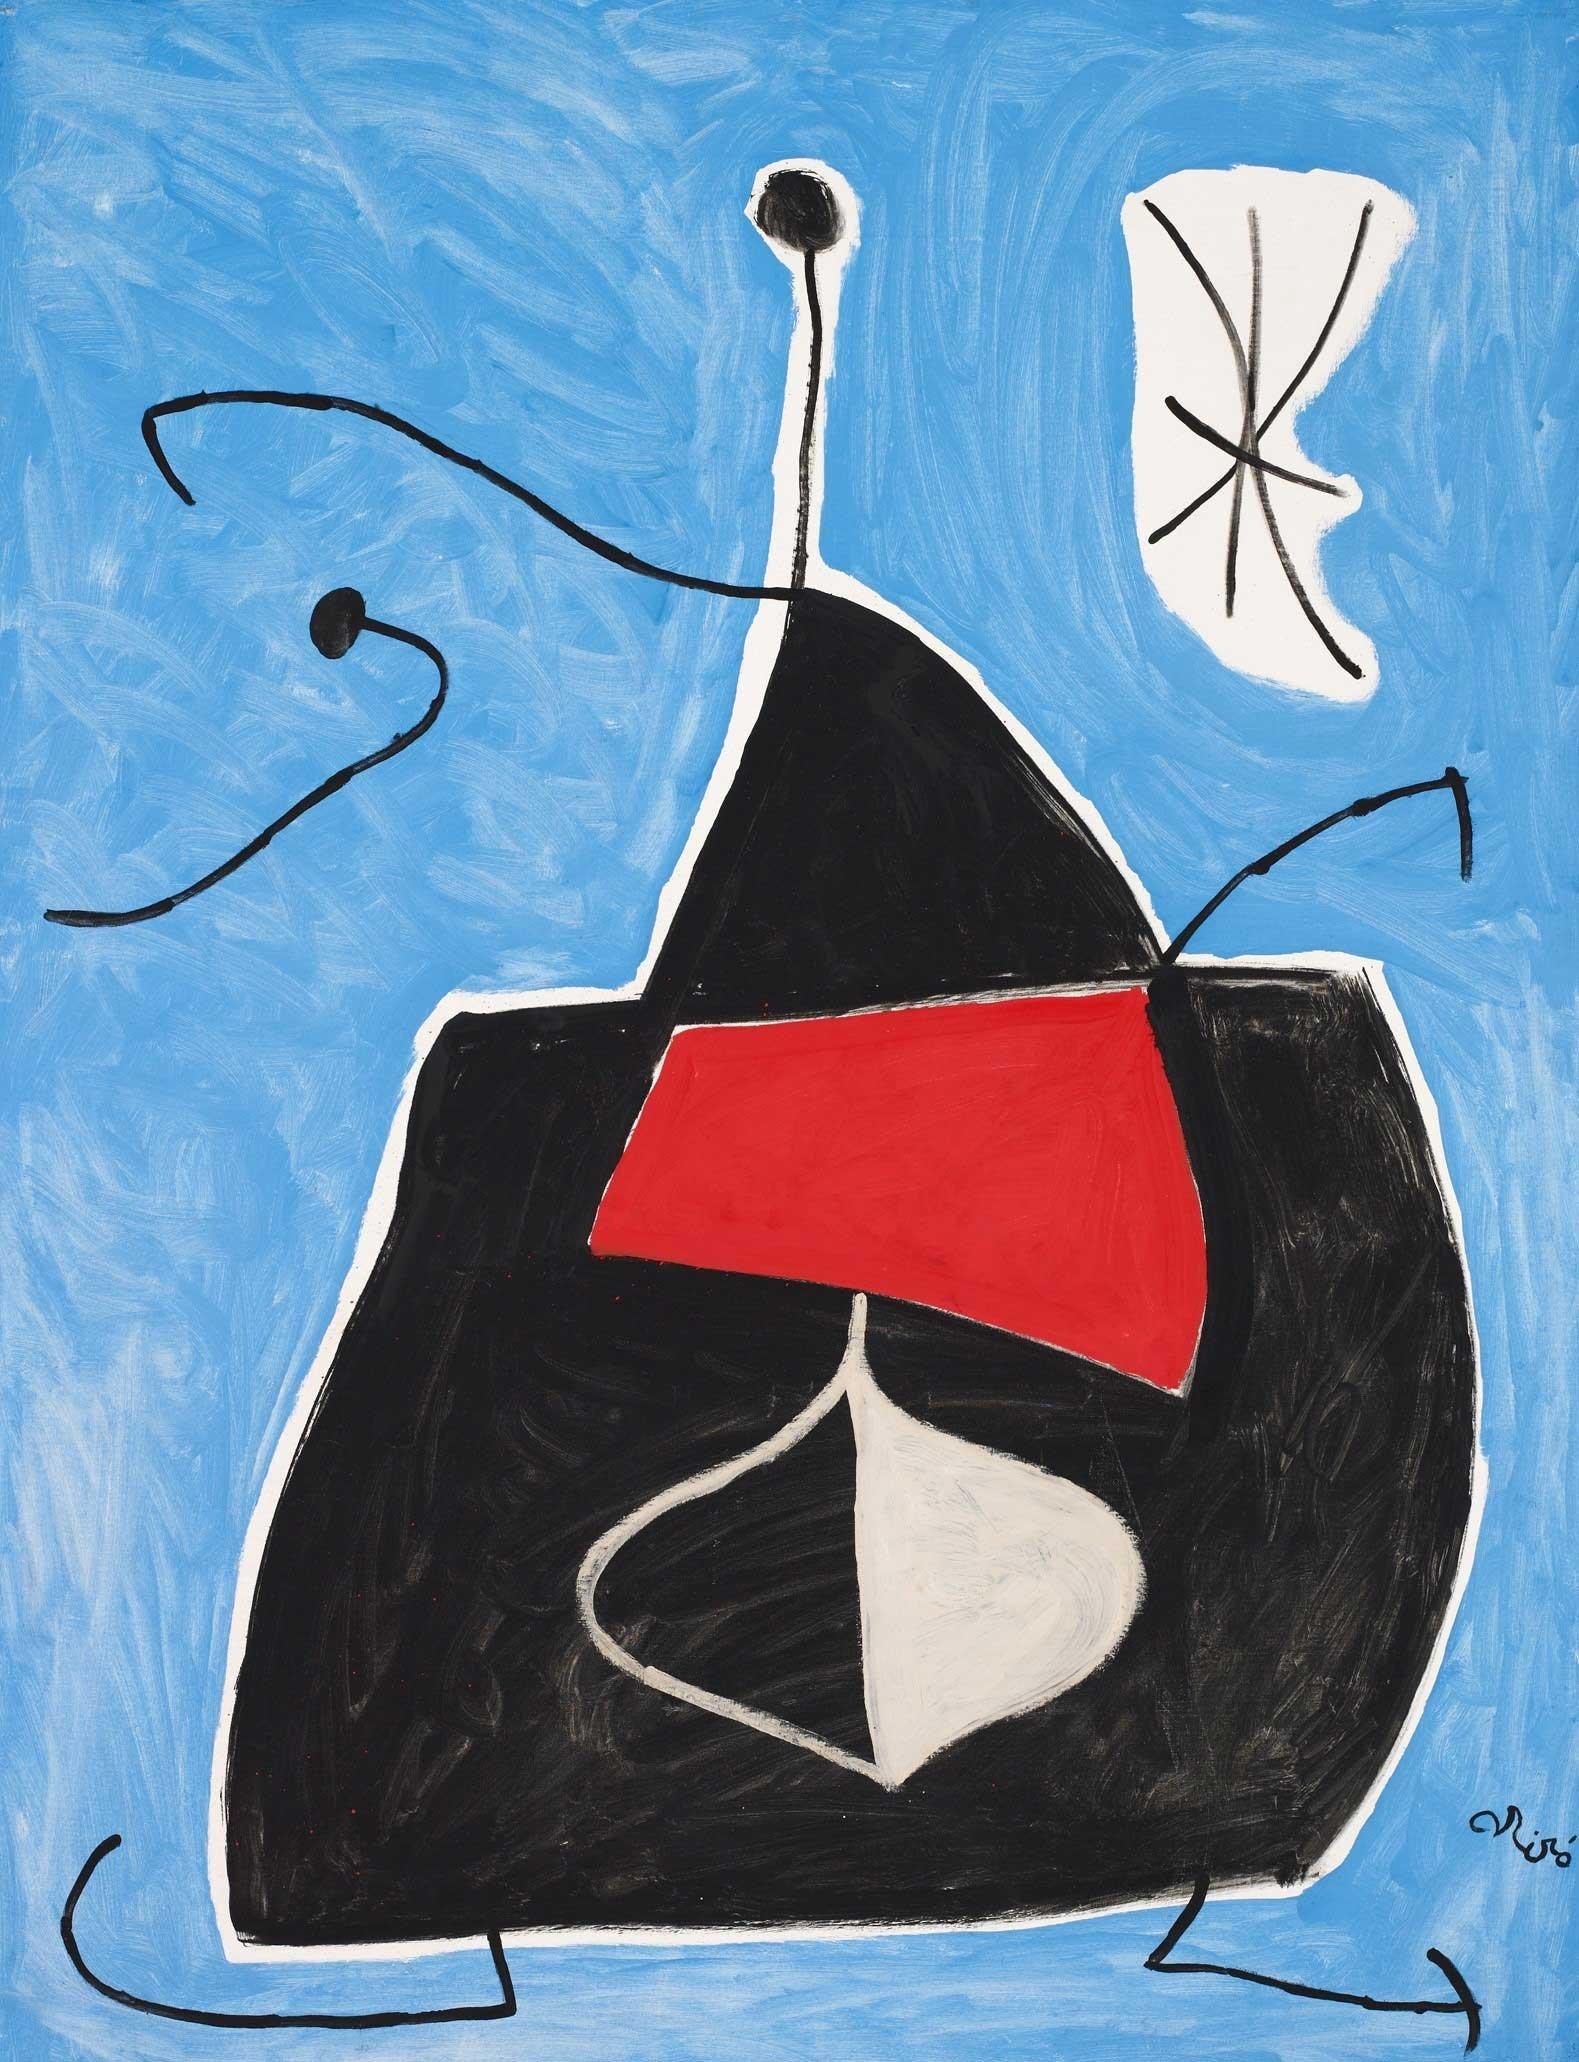 Joan Miro, 'Woman, Bird, Star,' 1978, oil and acrylic on canvas, 116 by 89 centimeters. (Courtesy of SSM)